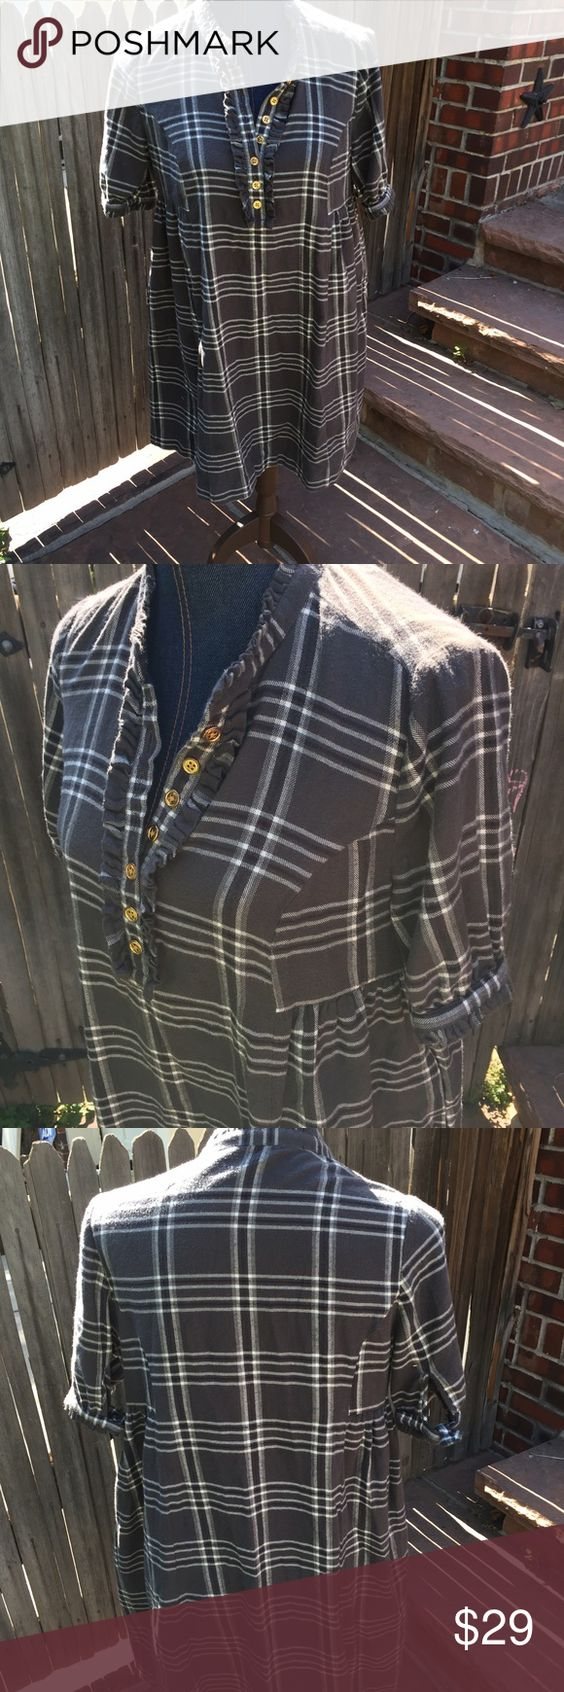 Juicy couture flannel plaid dress with pocket GUC Juicy couture flannel plaid dress with pocket GUC Juicy Couture Dresses